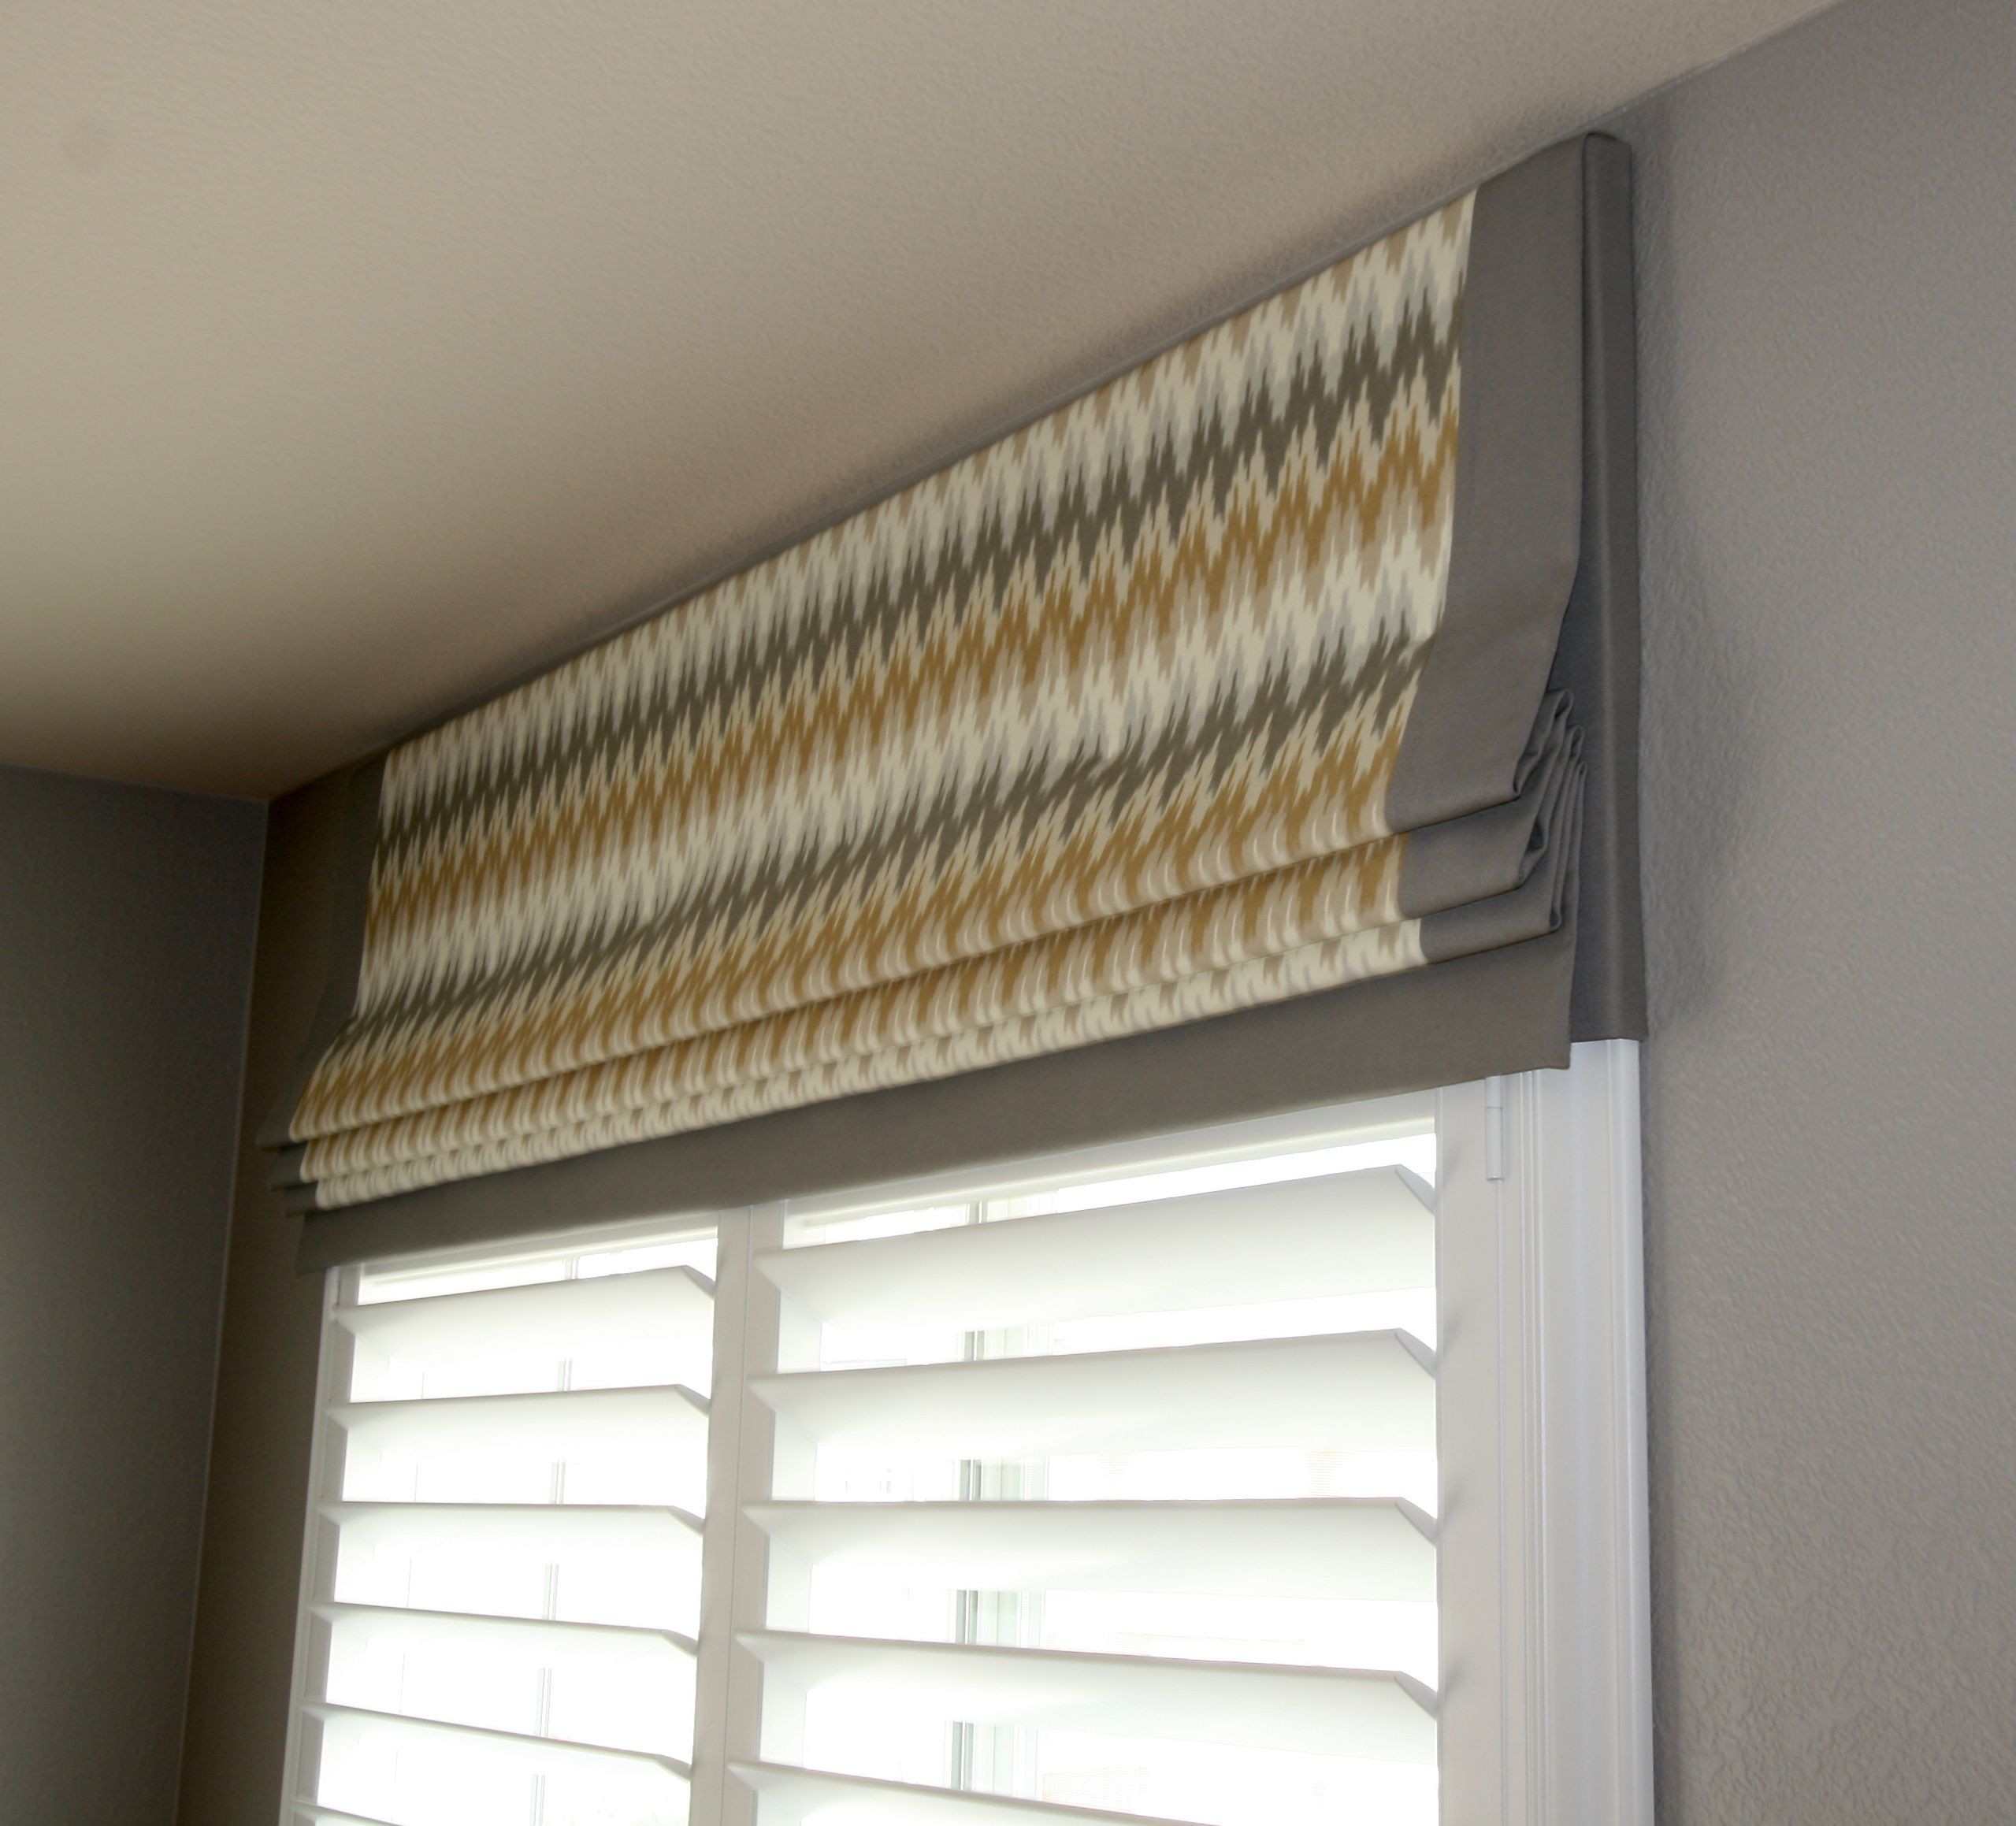 dubai abu supply customized blinds and made installation dhabi pin measure roller including in to more